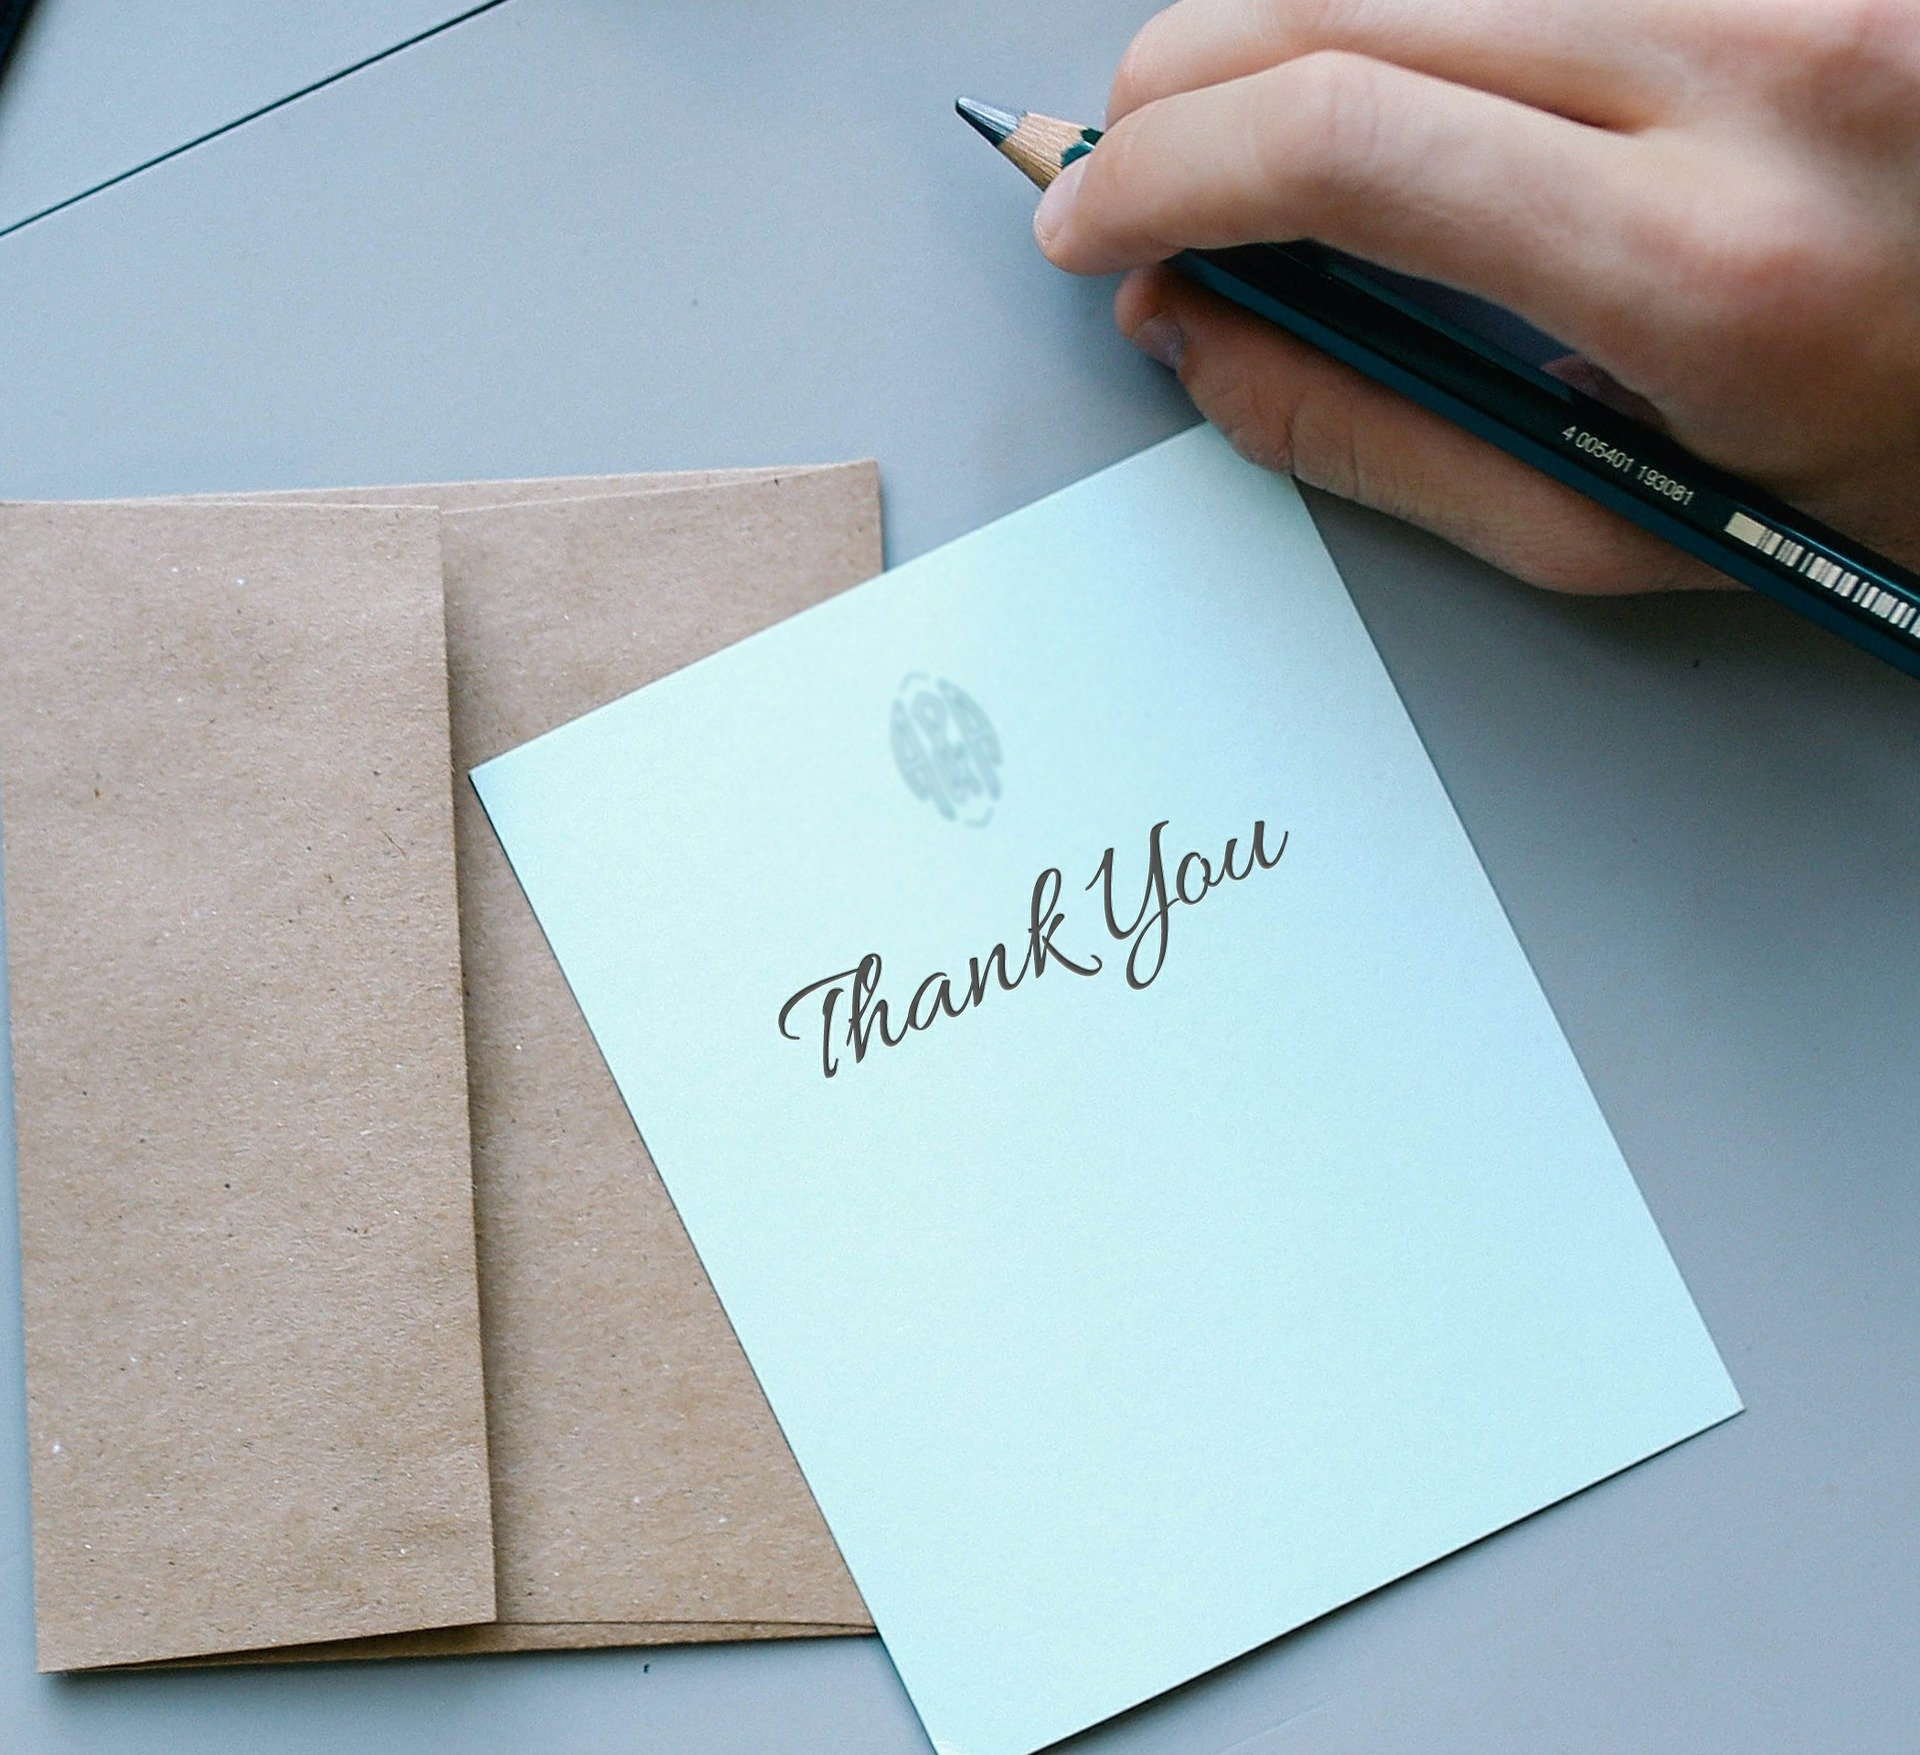 writing a thank you note is more powerful than we realize study shows